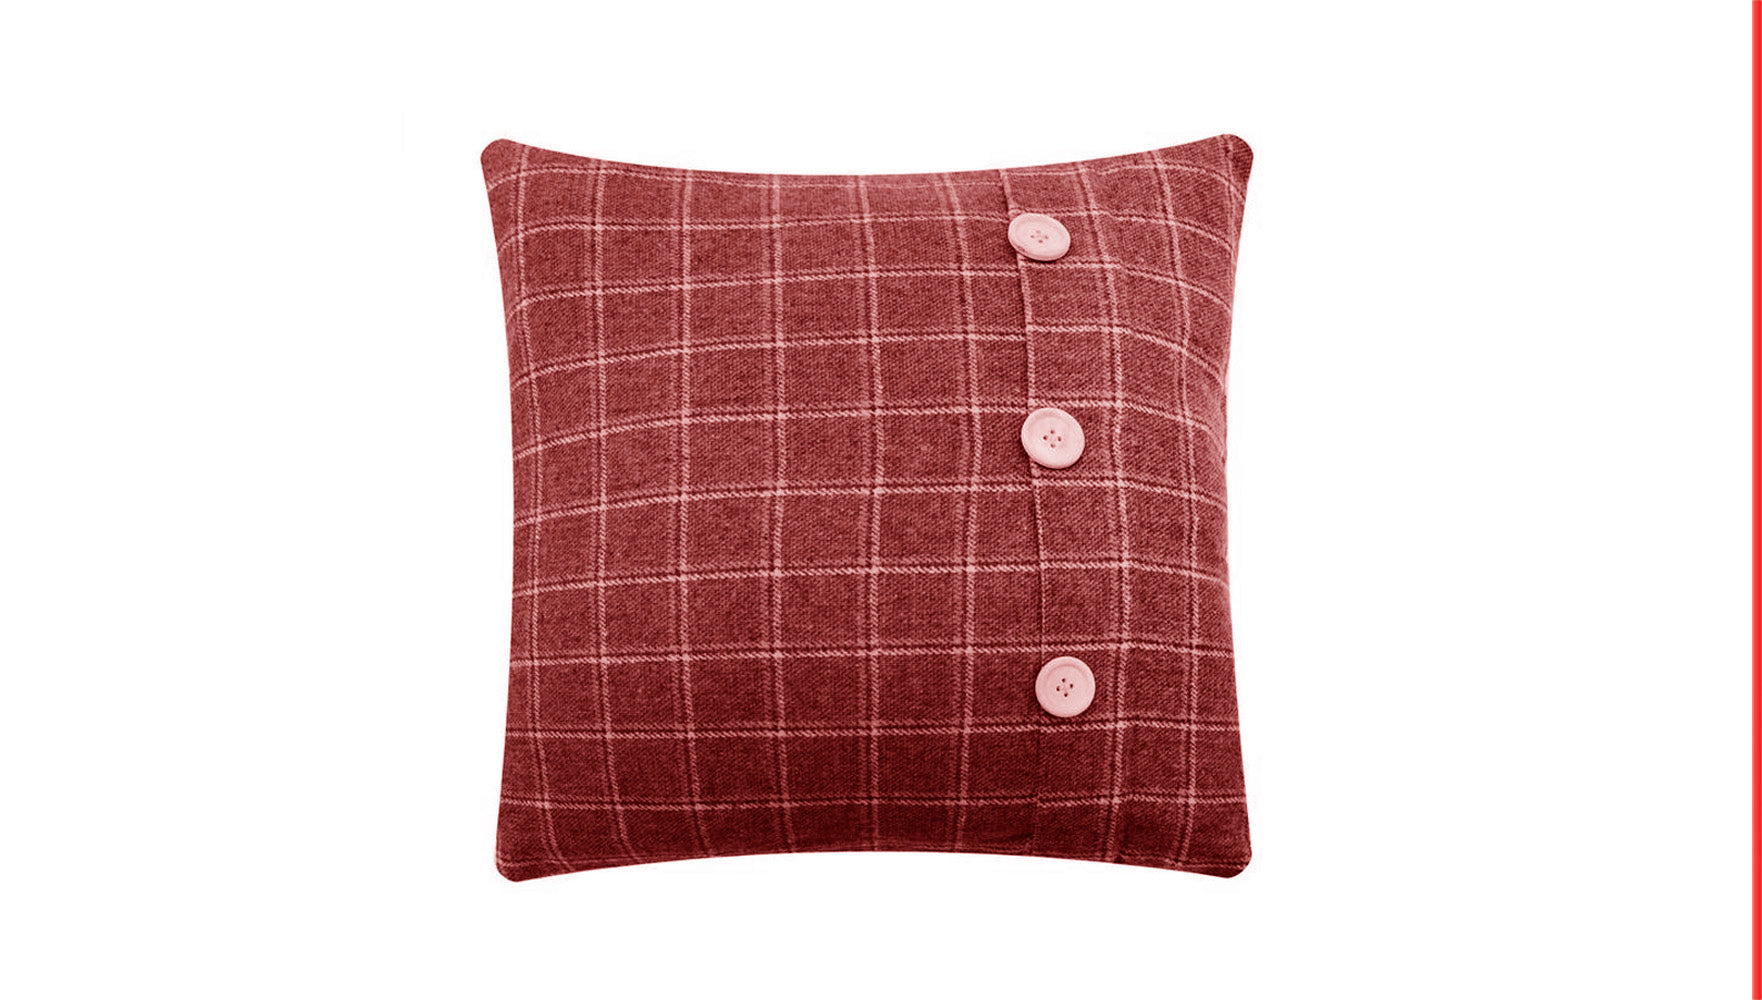 Ebarza Online Furniture Stores UAE HOME DECOR CUSHIONS